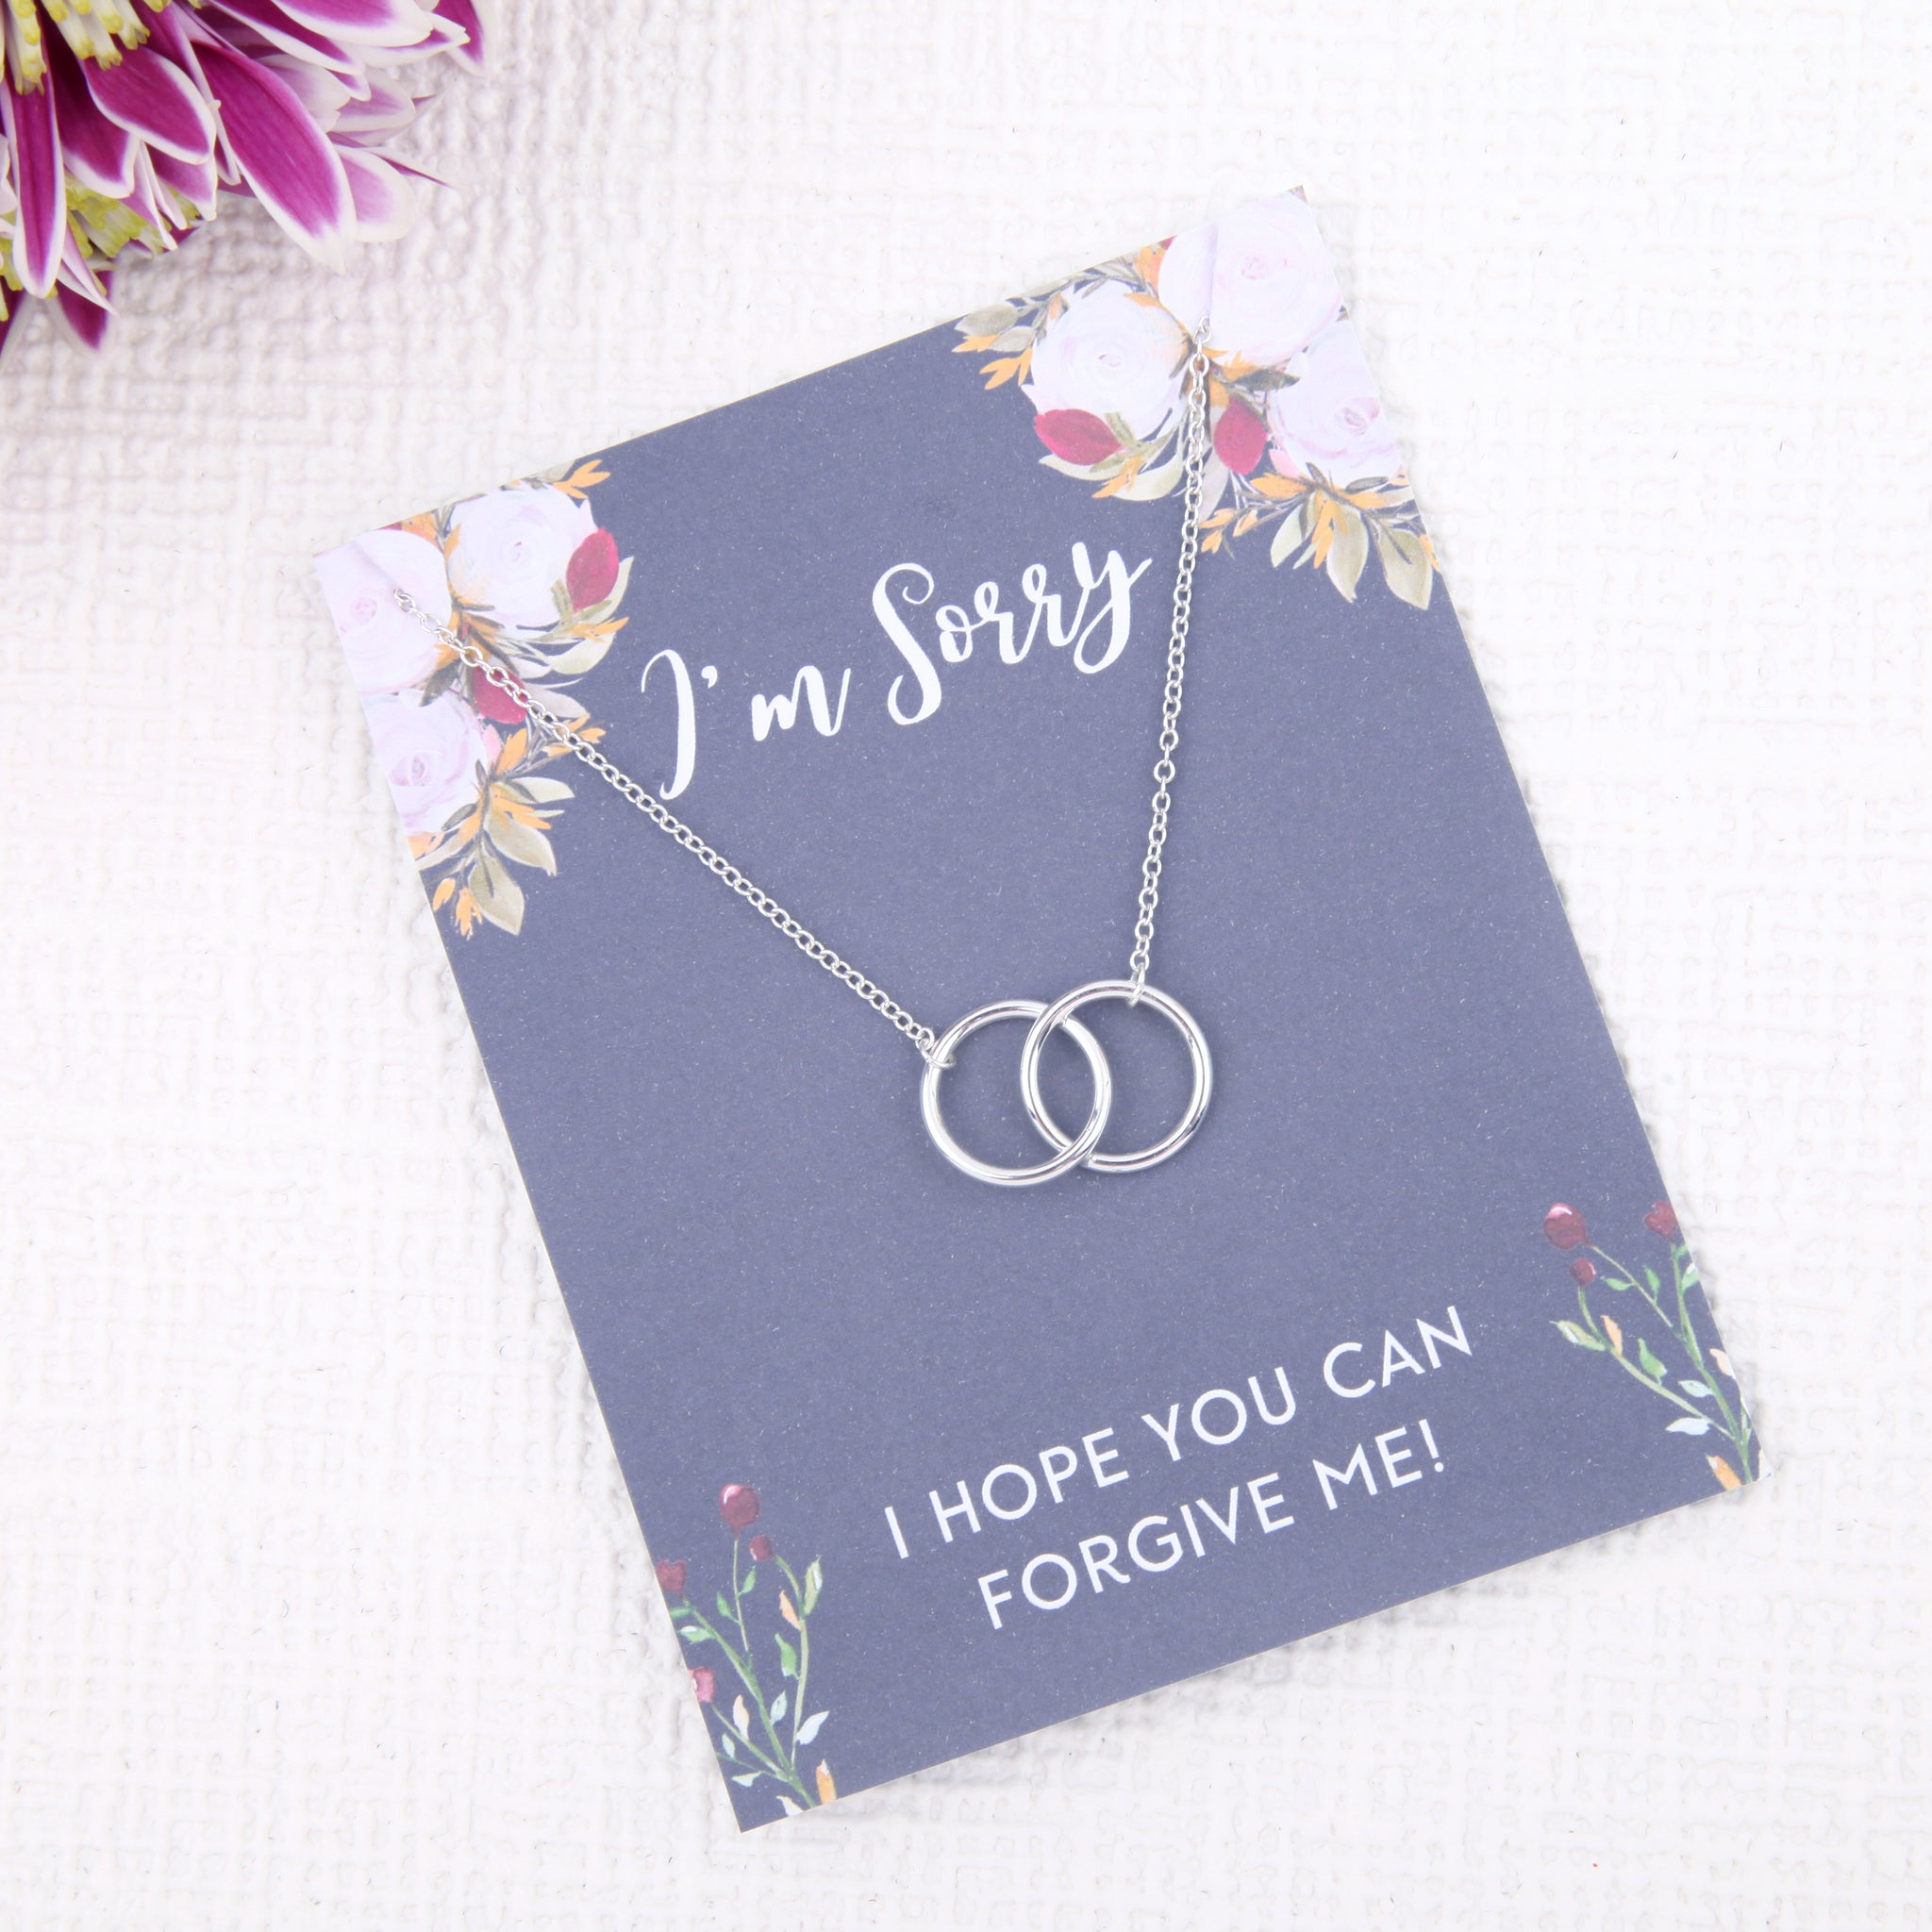 Personalised I'm sorry gift ideas present uk - message card necklace - Statement Made Jewellery